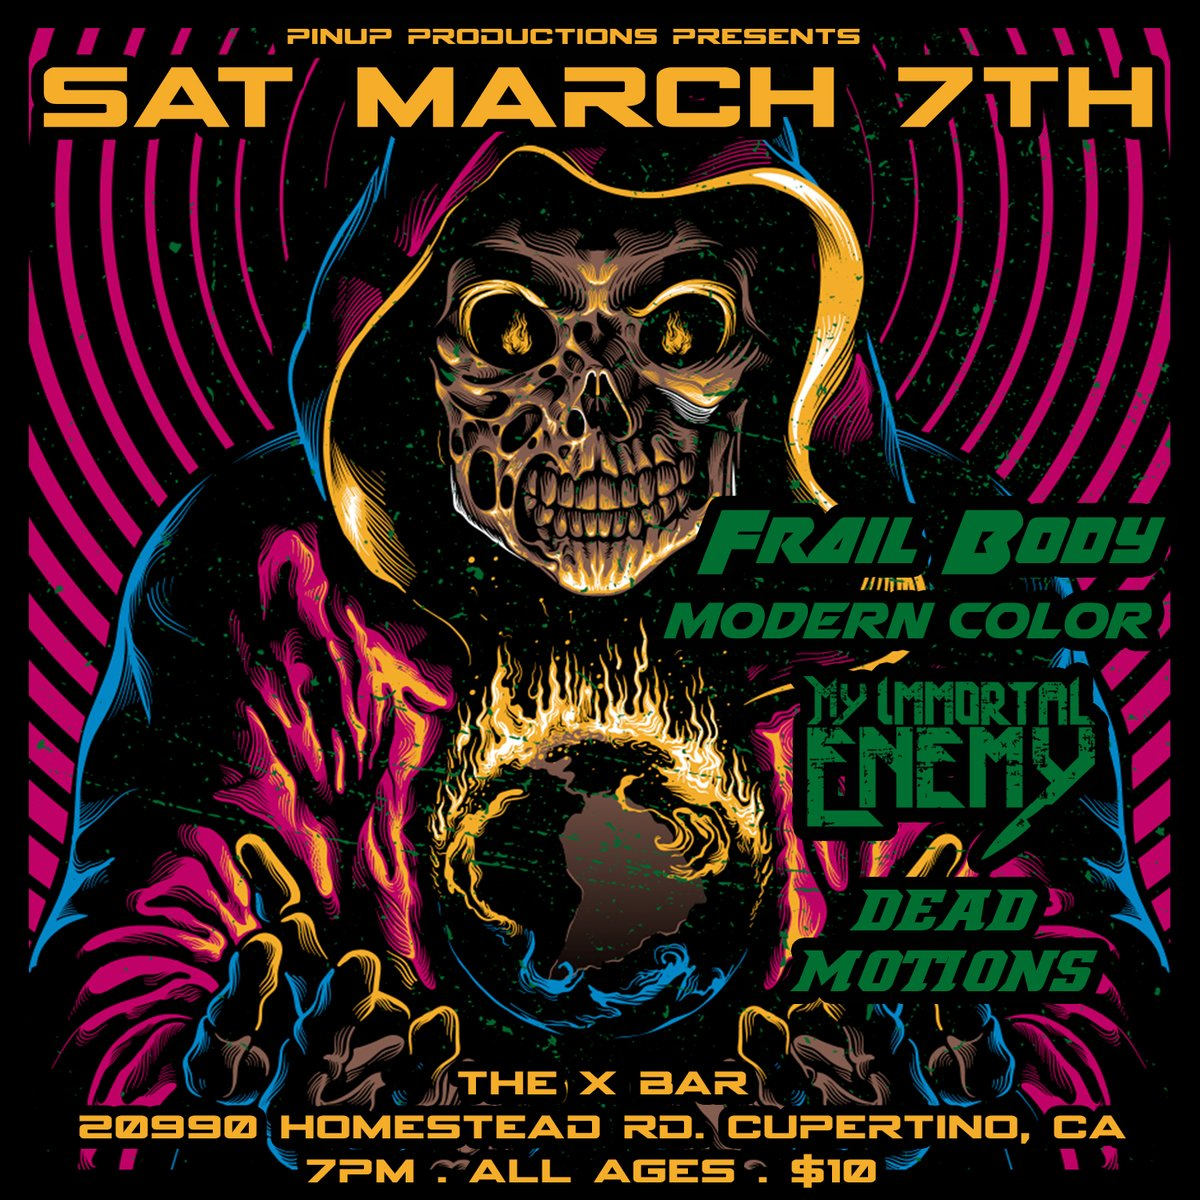 Our first show of 2020. San Jose, California. All Ages @PinUpPresents https://t.co/0e66nlZWX3